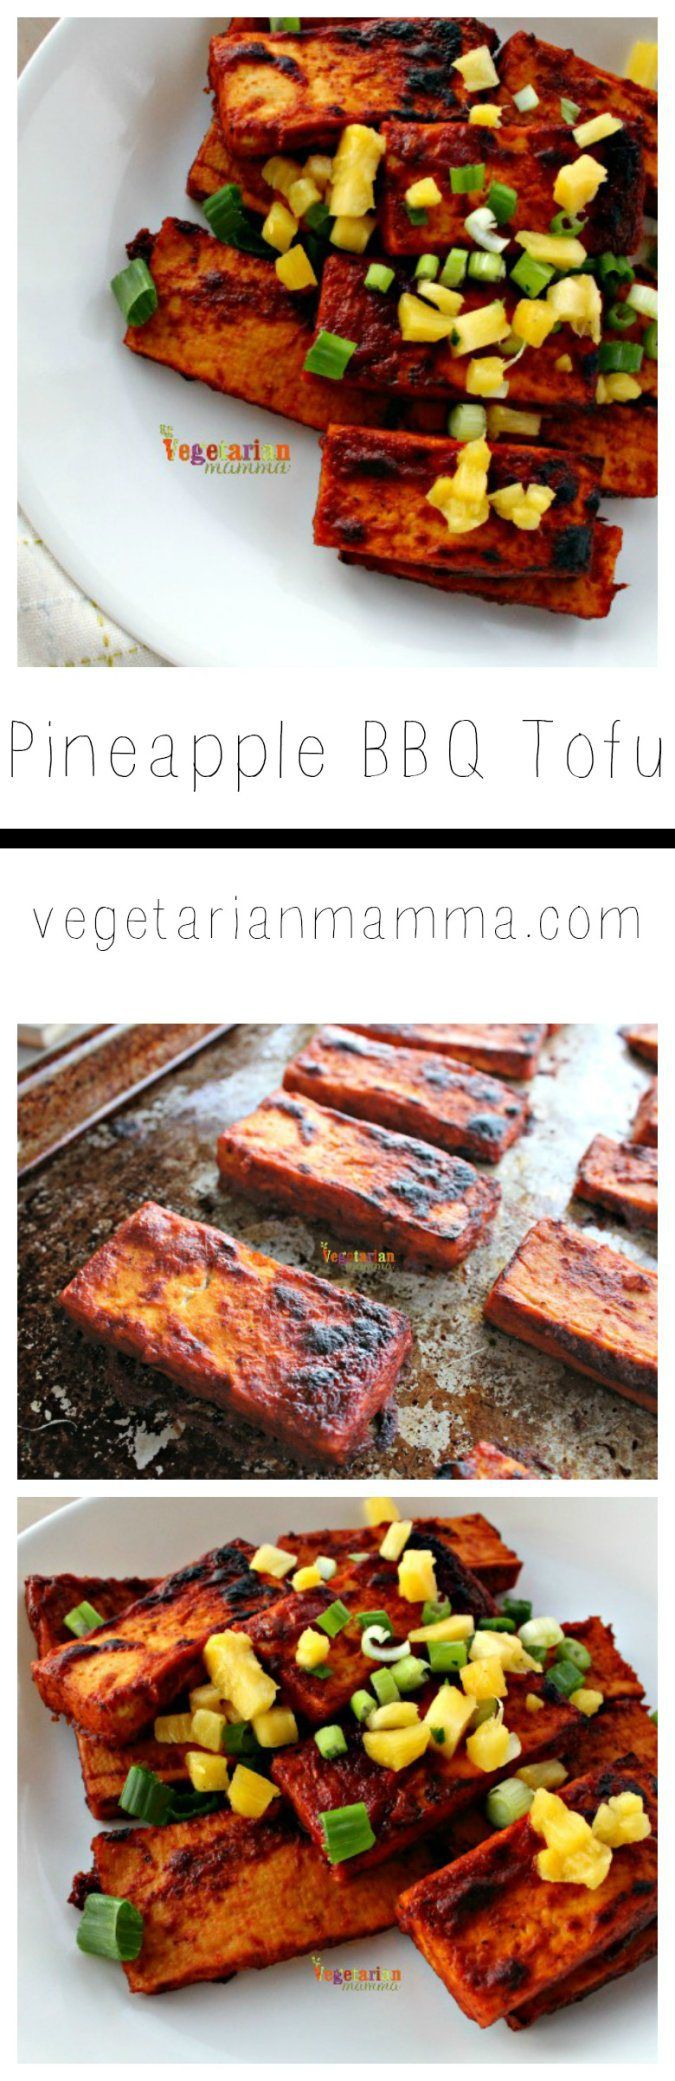 Pineapple BBQ Tofu